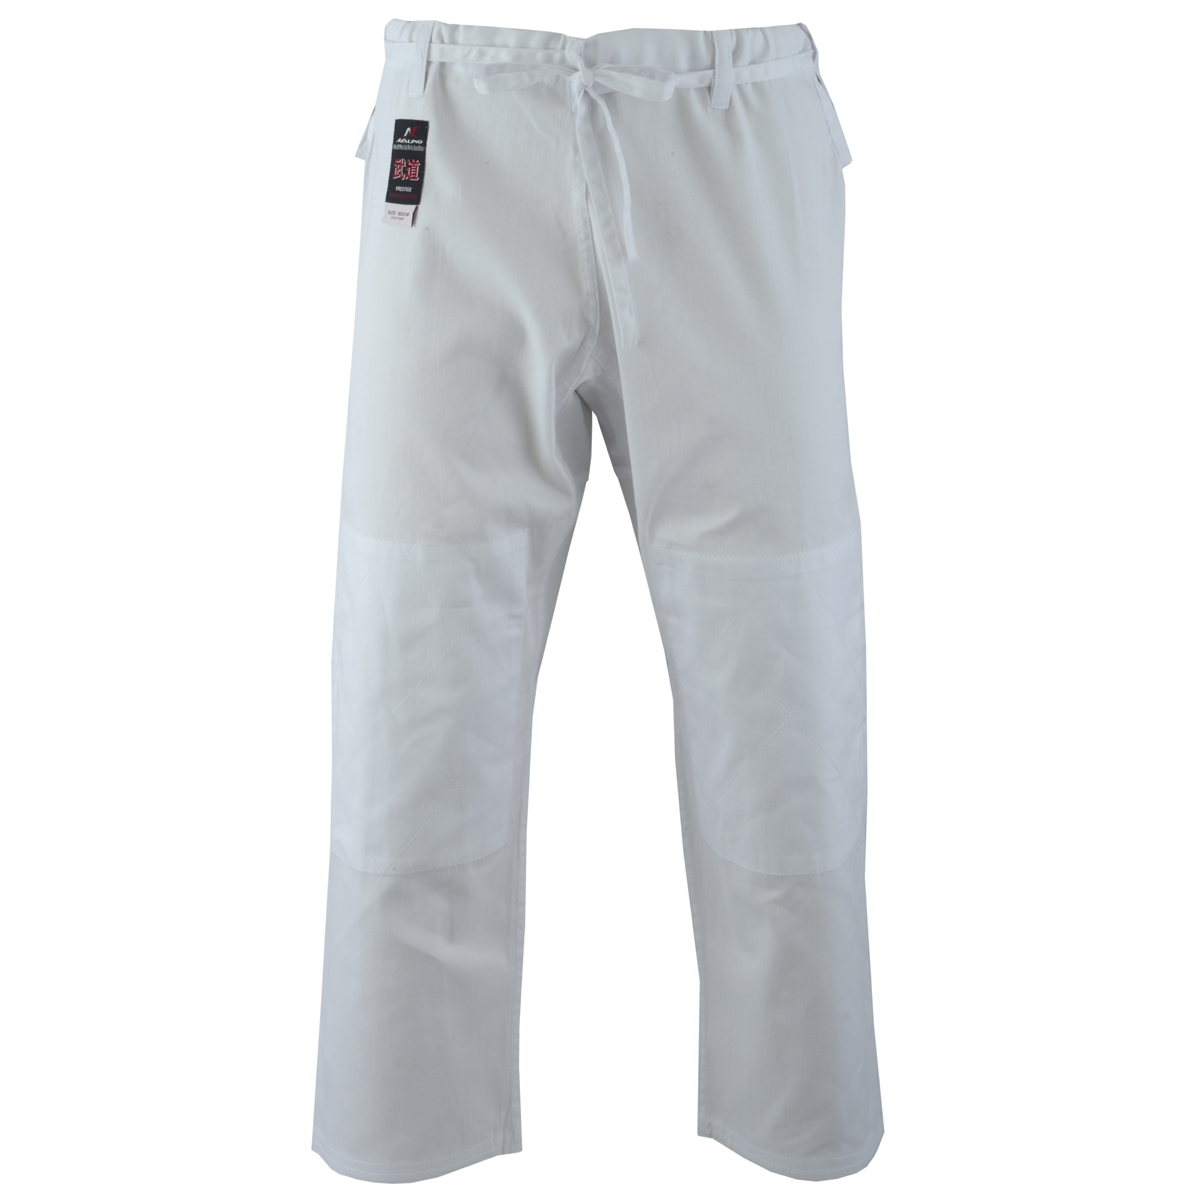 Malino Kids Student Judo Trousers Lightweight Cotton White - 7oz